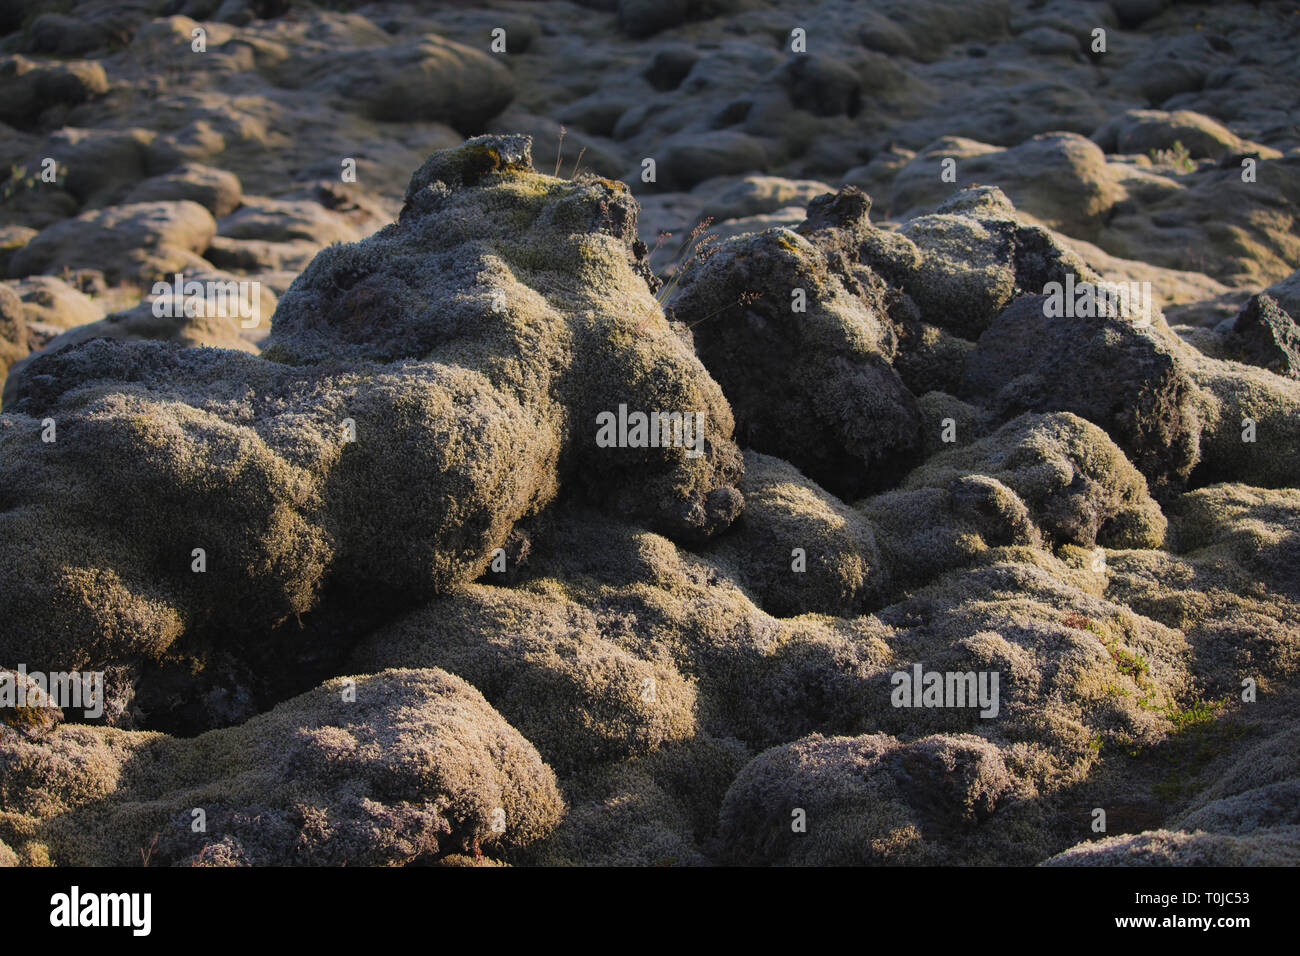 Lava field and lava rocks covered by the moss, panorama - Stock Image